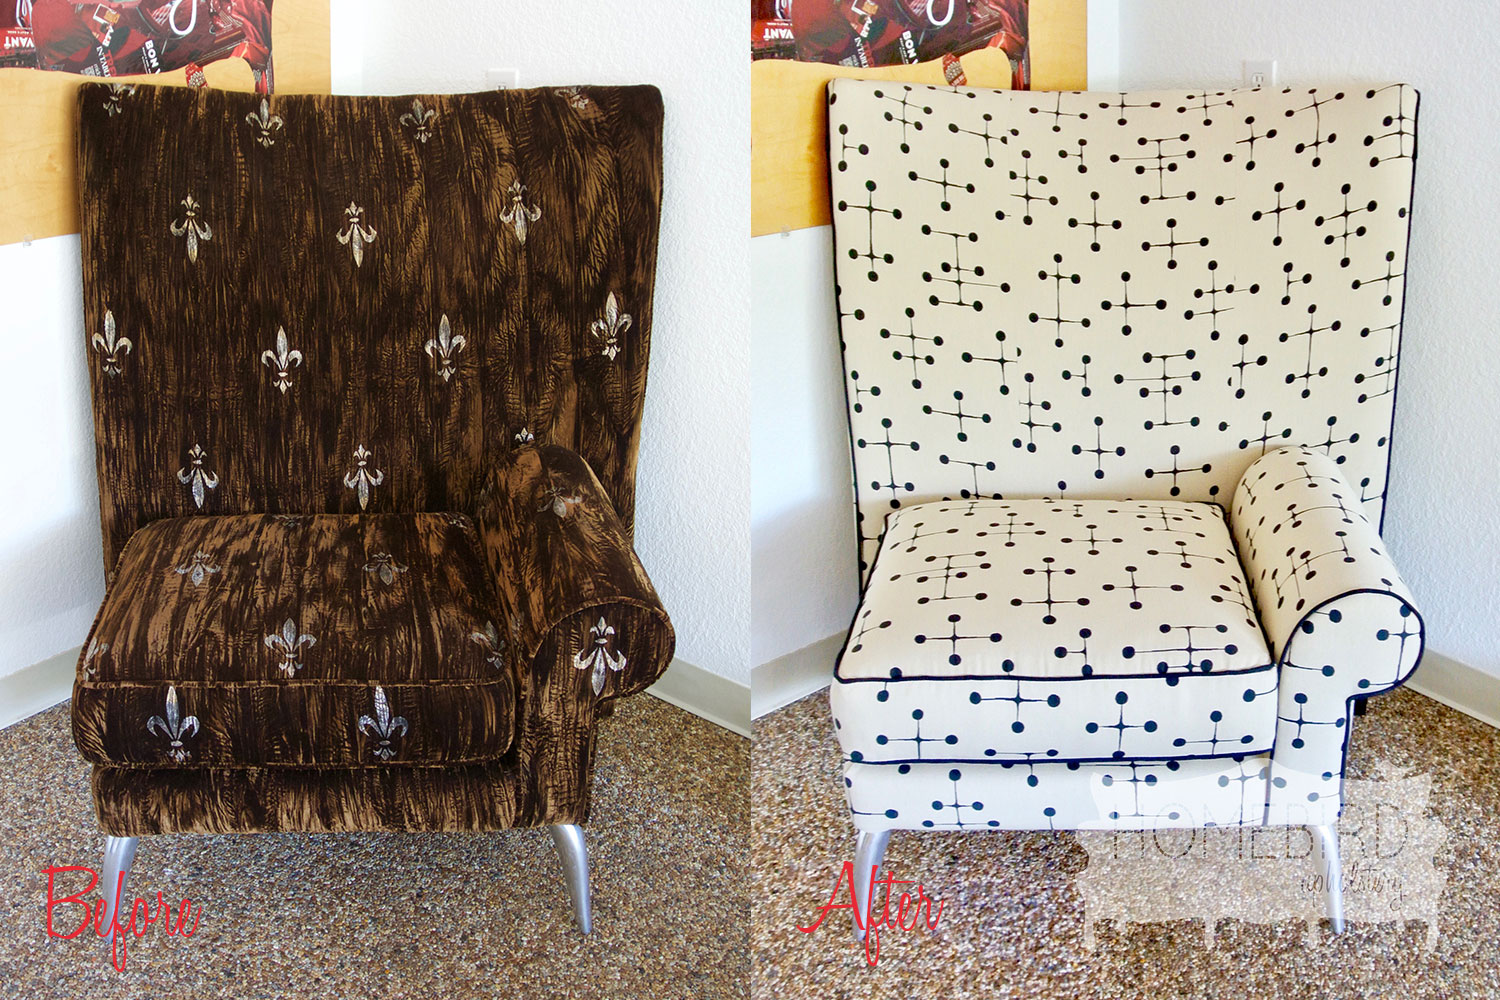 Jenna-Pilant-Homebird-Upholstery-Before-&-After-Upholstery-Picture-Metal-Base-Chair